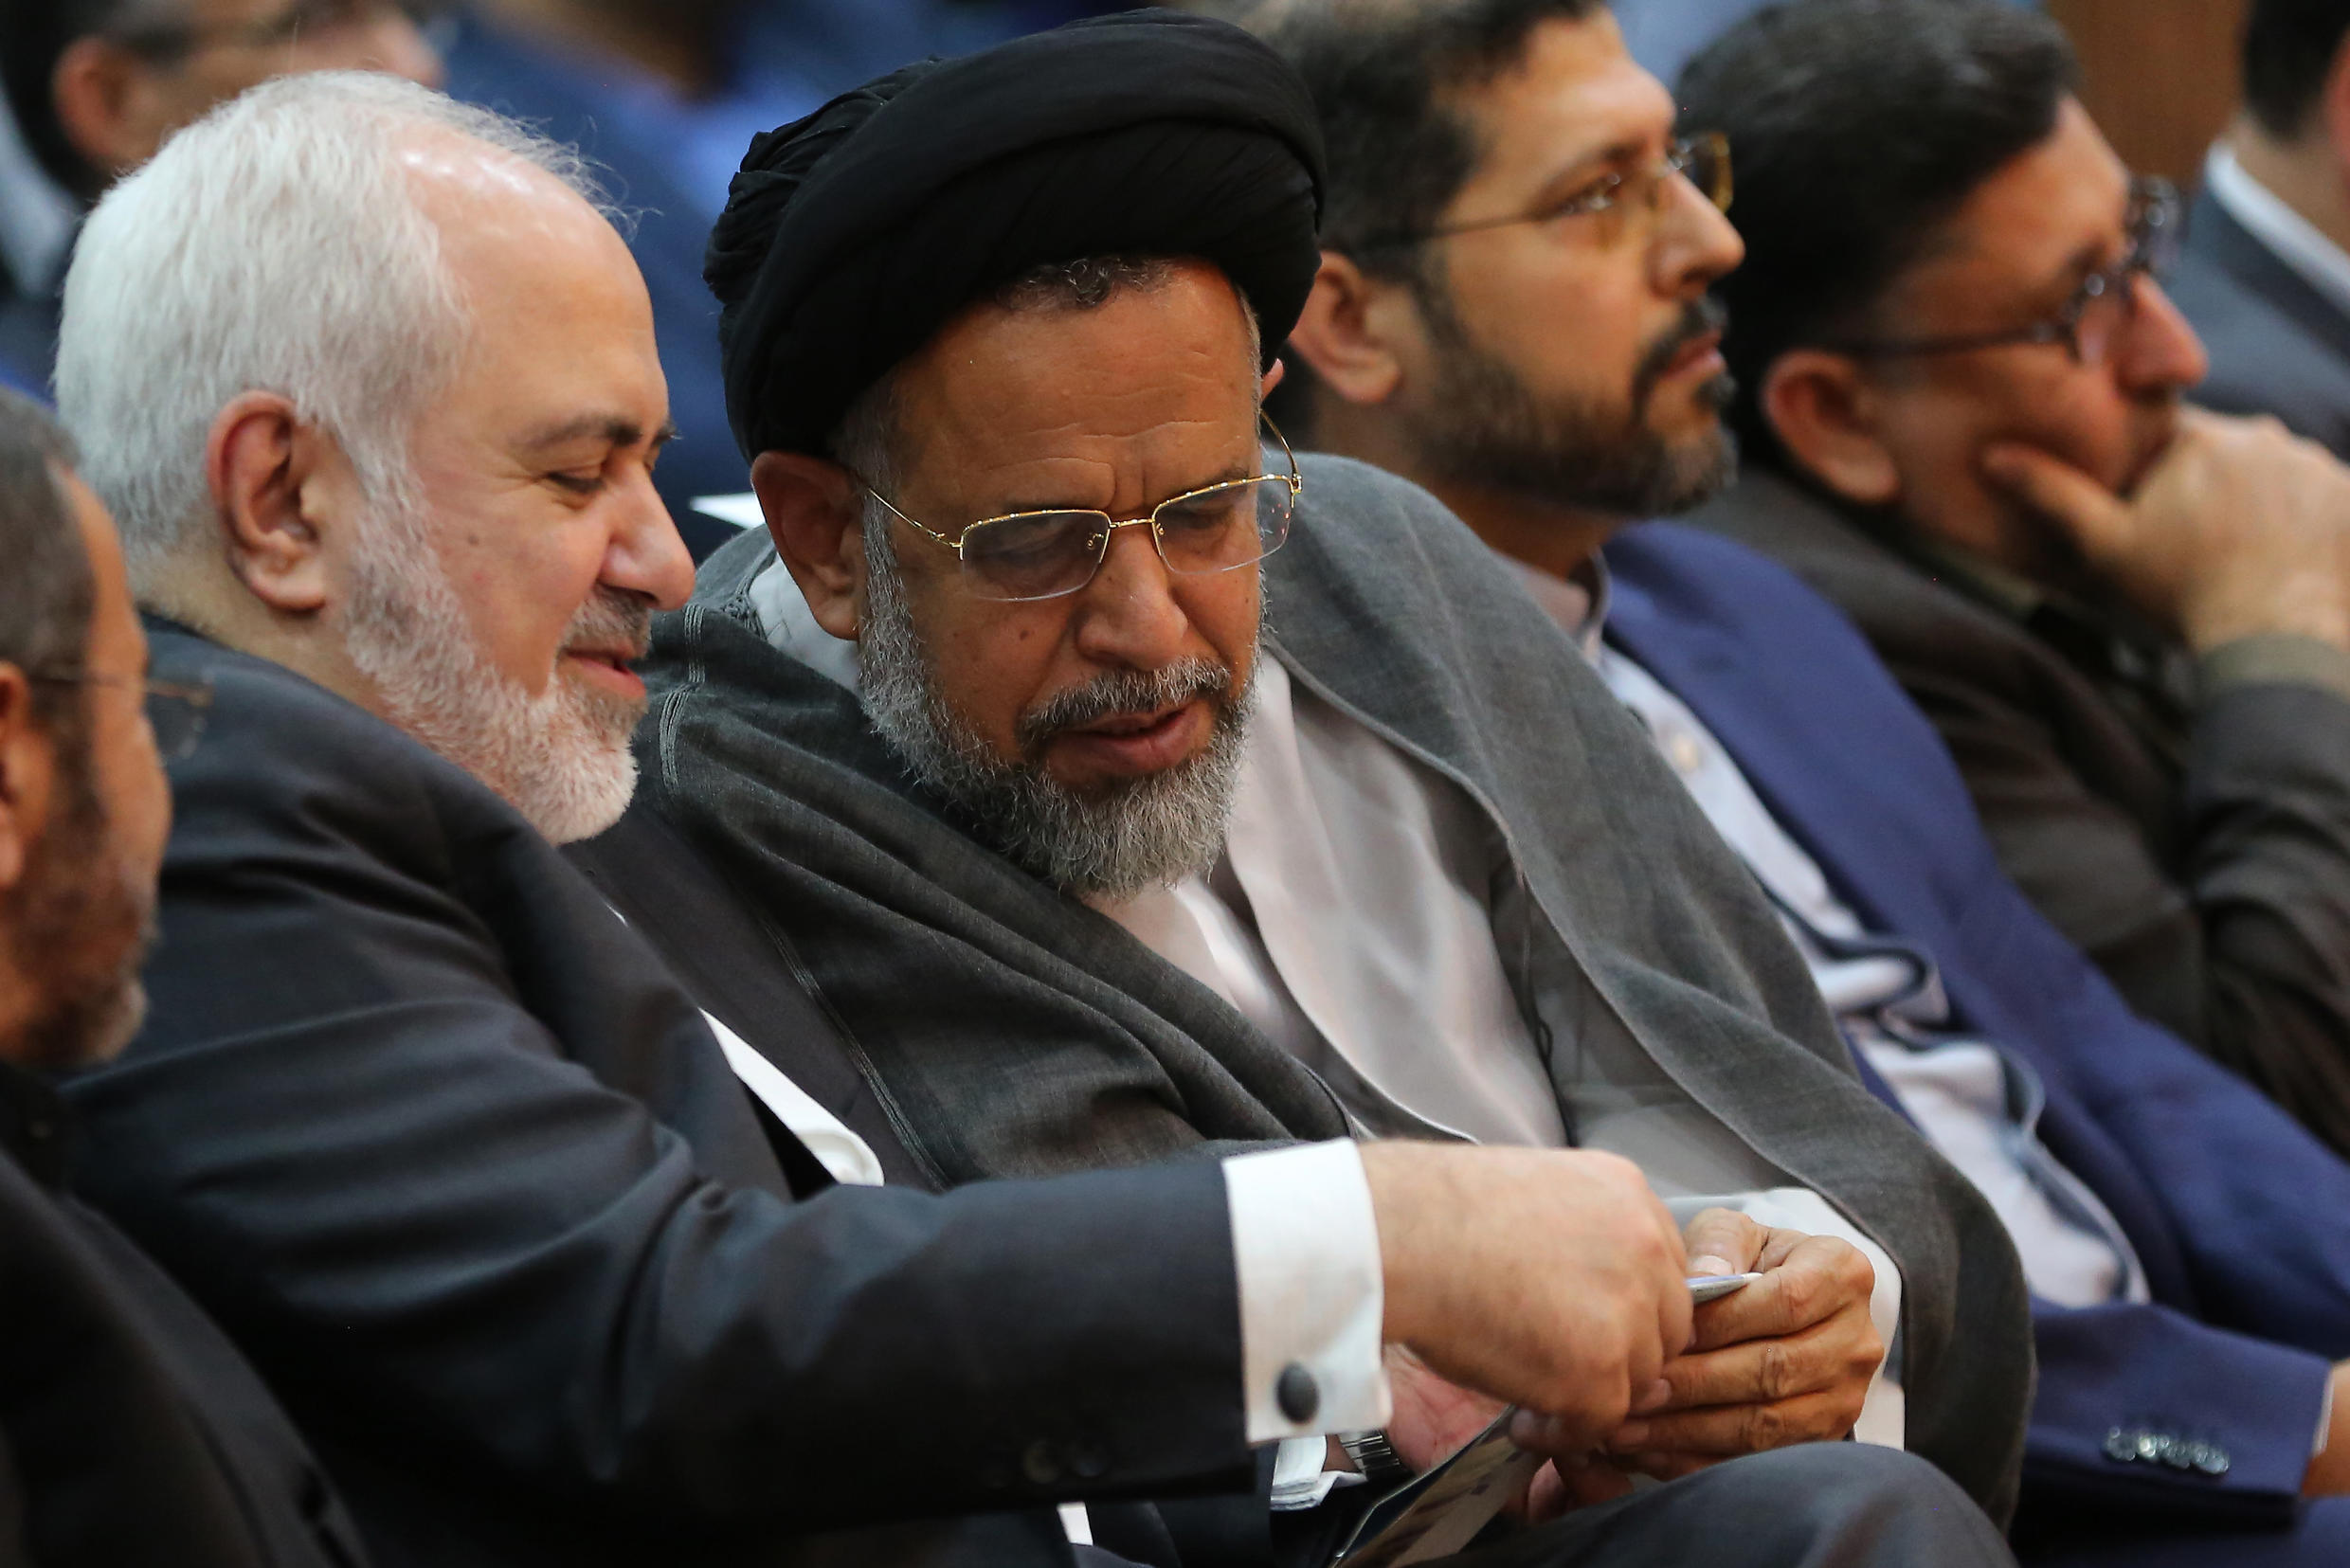 Iran's Intelligence Minister Seyyed Mahmoud Alavi (2-L) shares a word with Foreign Minister Mohammad Javad Zarif  at a conference in Tehran in October 2019